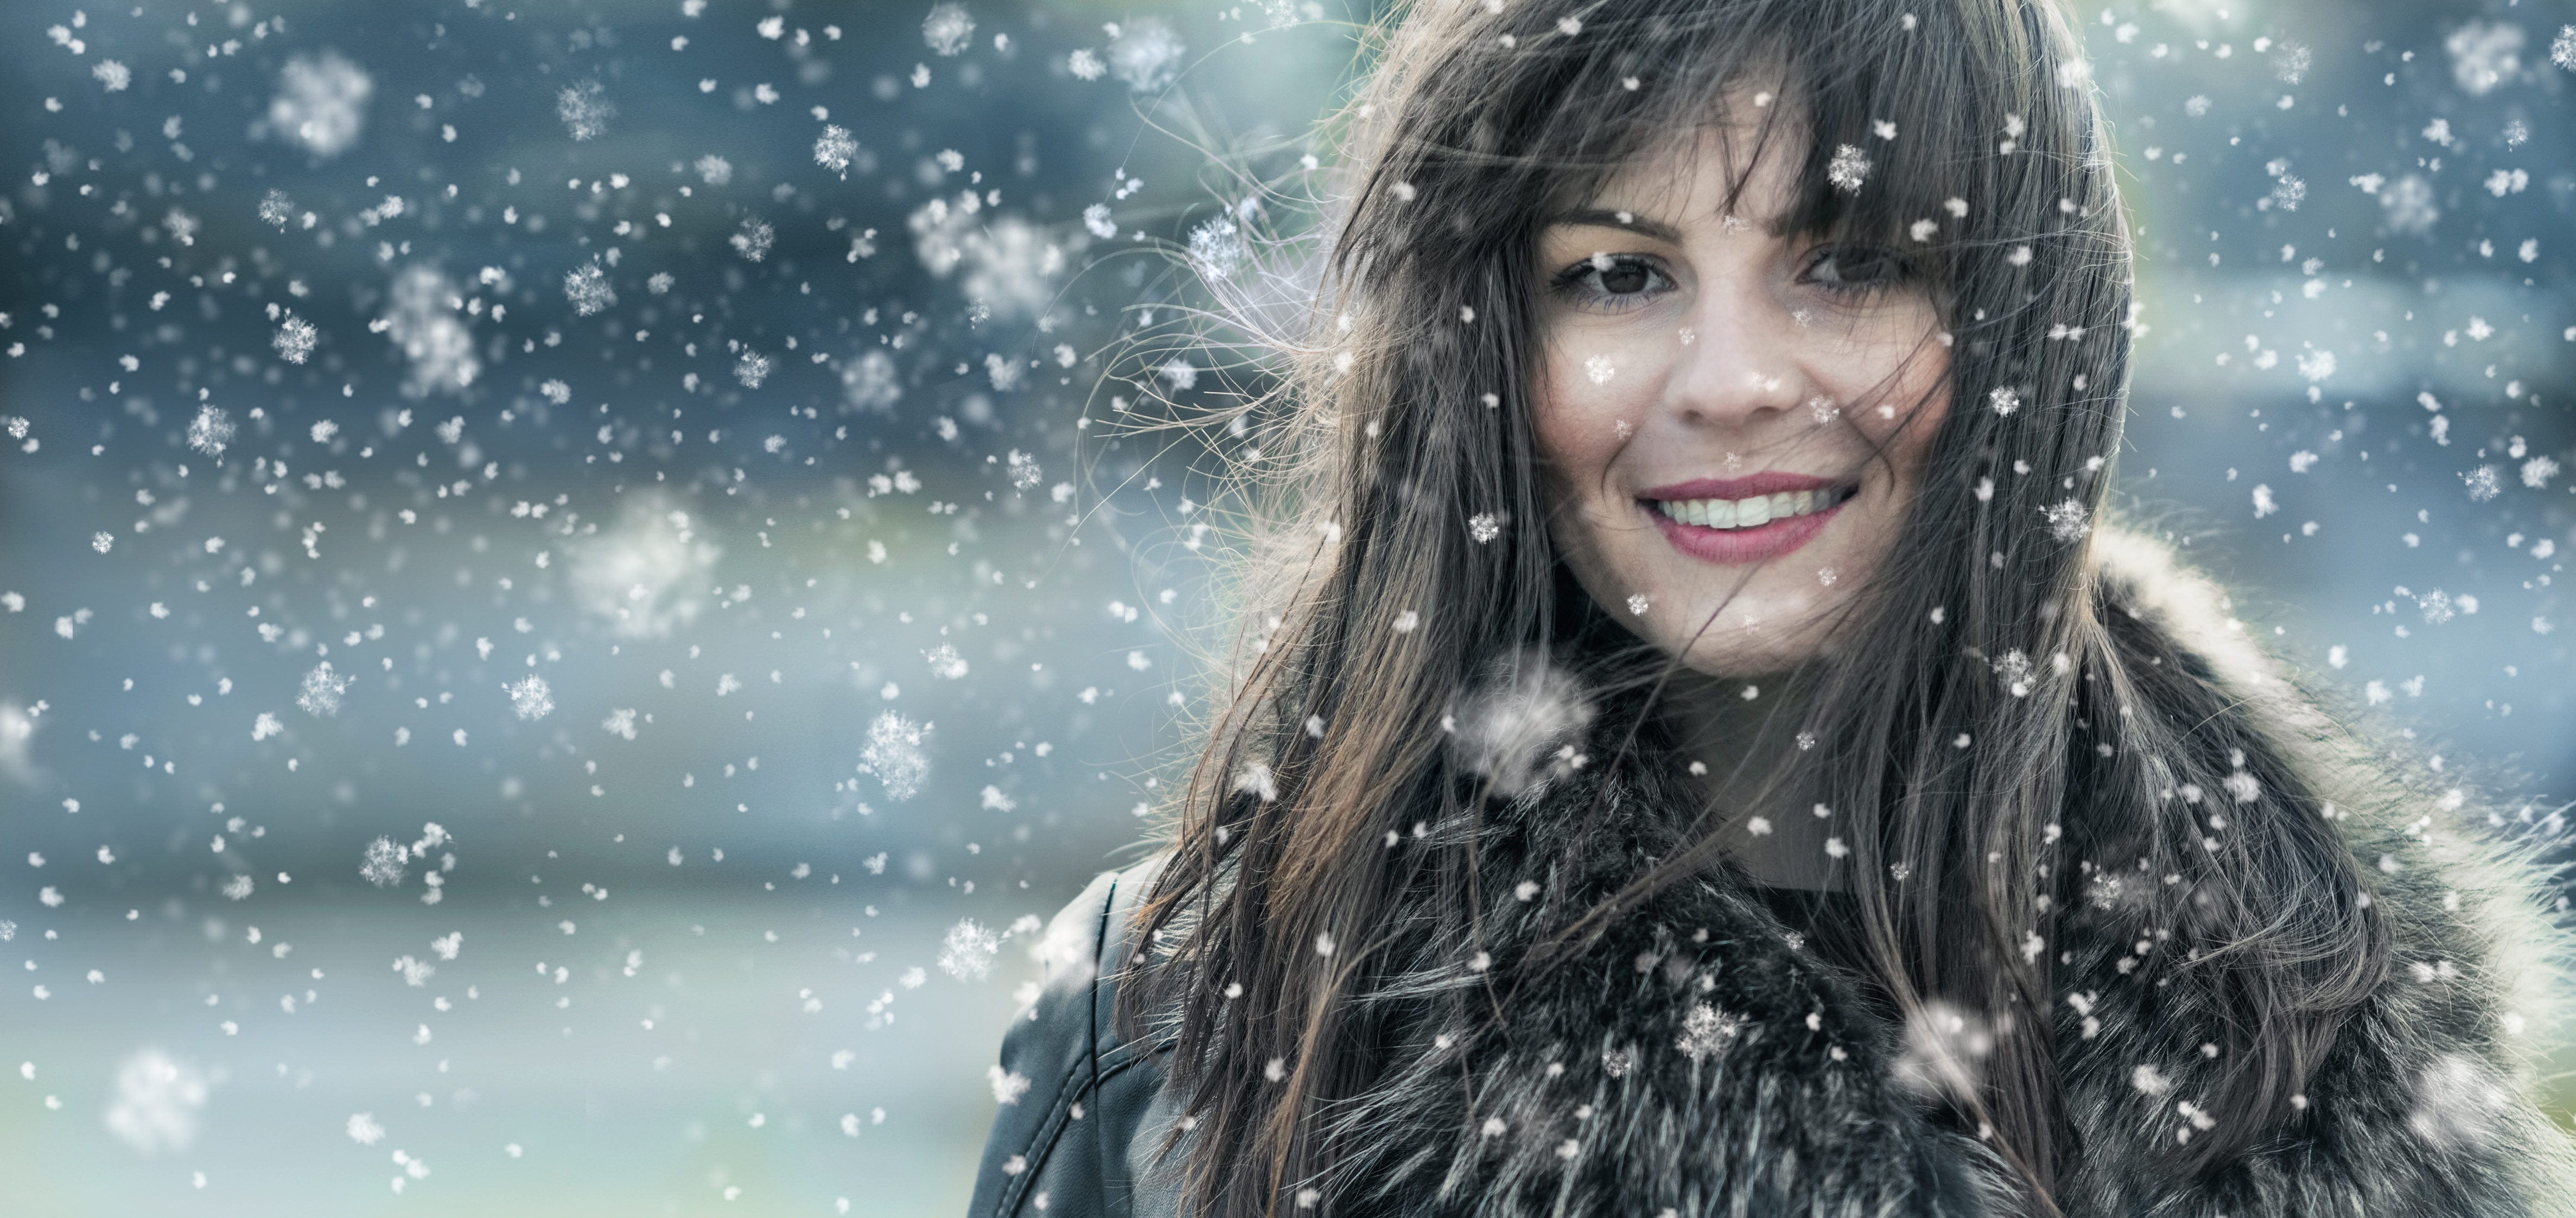 haircaretips for winter